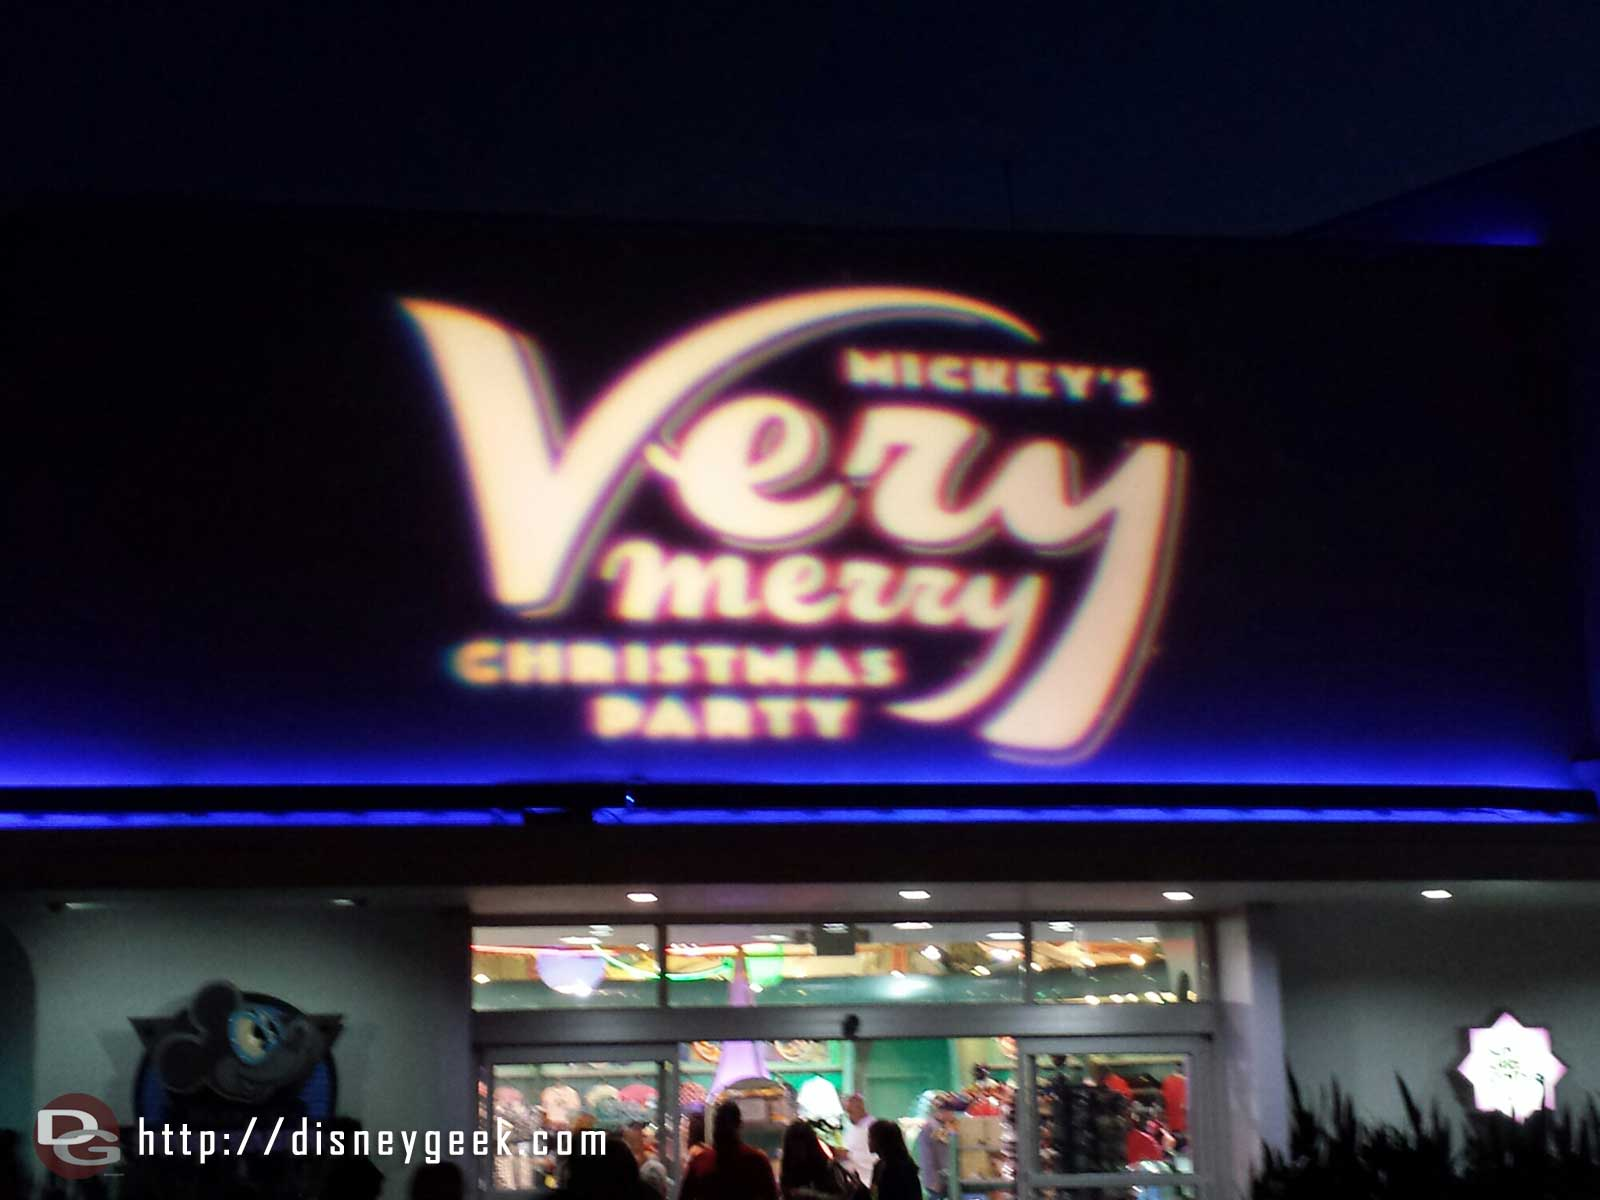 Mickey's Very Merry Christmas Party lights are on in Tomorrowland #WDW